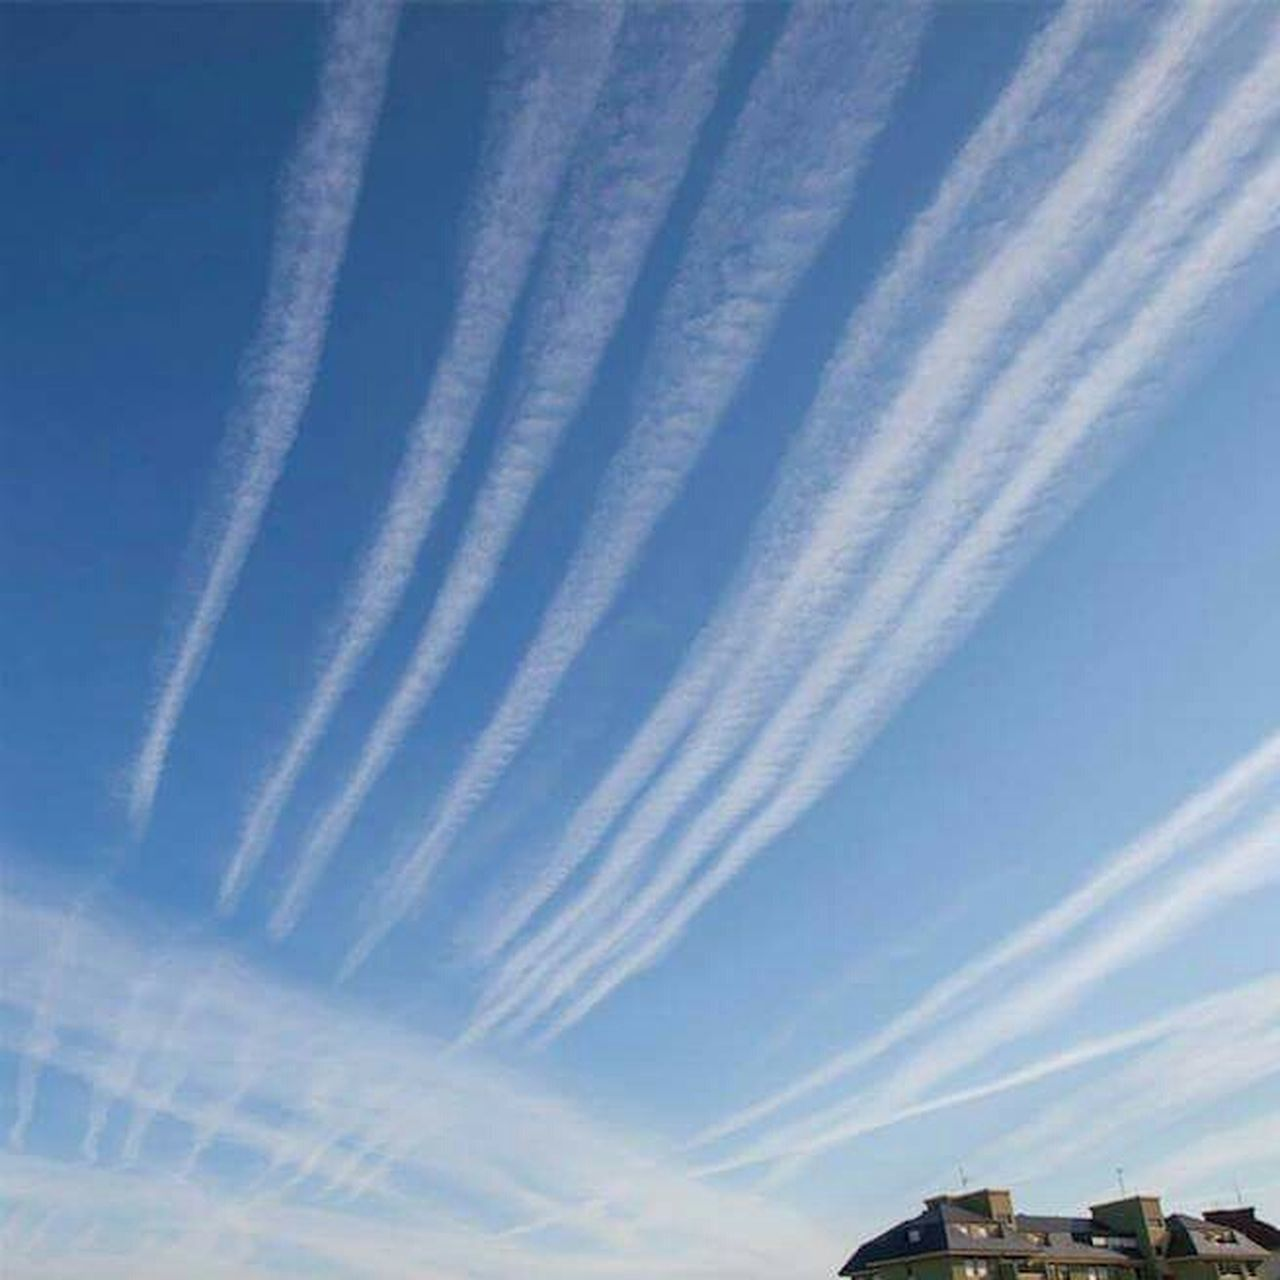 Chemical Sky GeoEngineering Aerosol No Filters Or Effects Whatthefuckaretheyspraying Chemtrails Grid Pattern taking the piss now